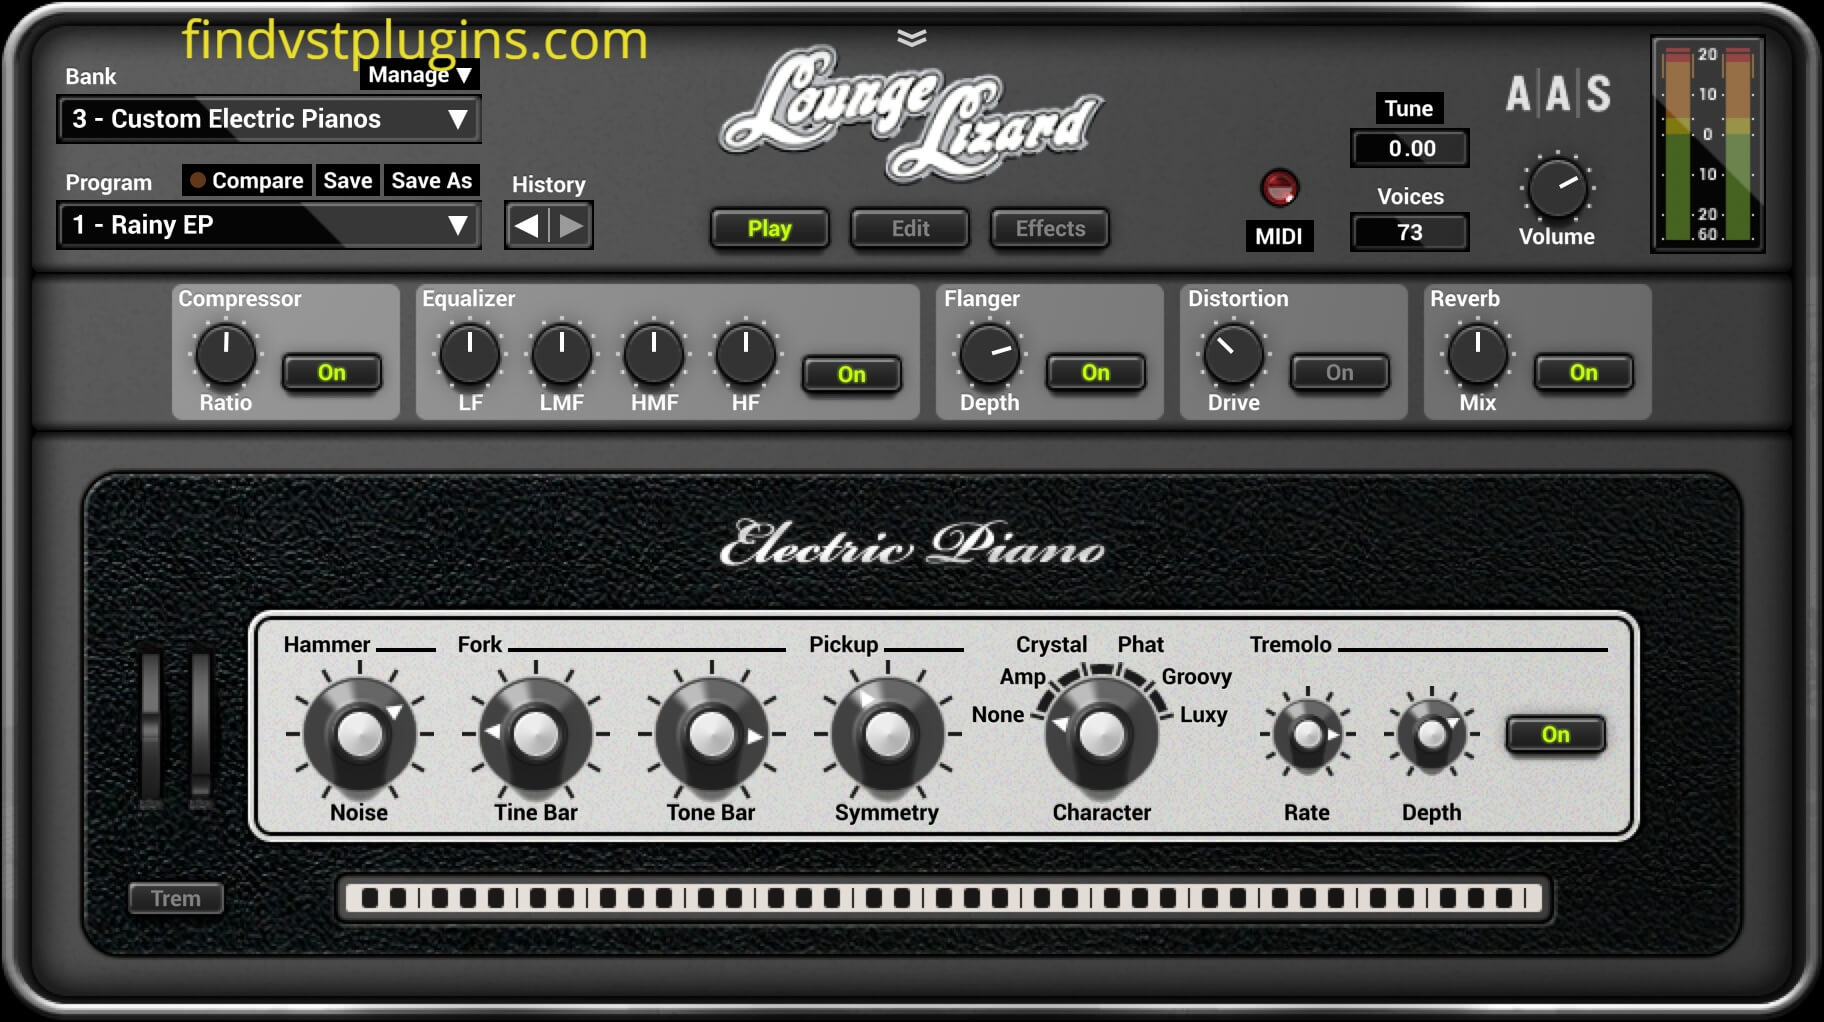 Lounge Lizard VST Full Crack + Torrent Free Download